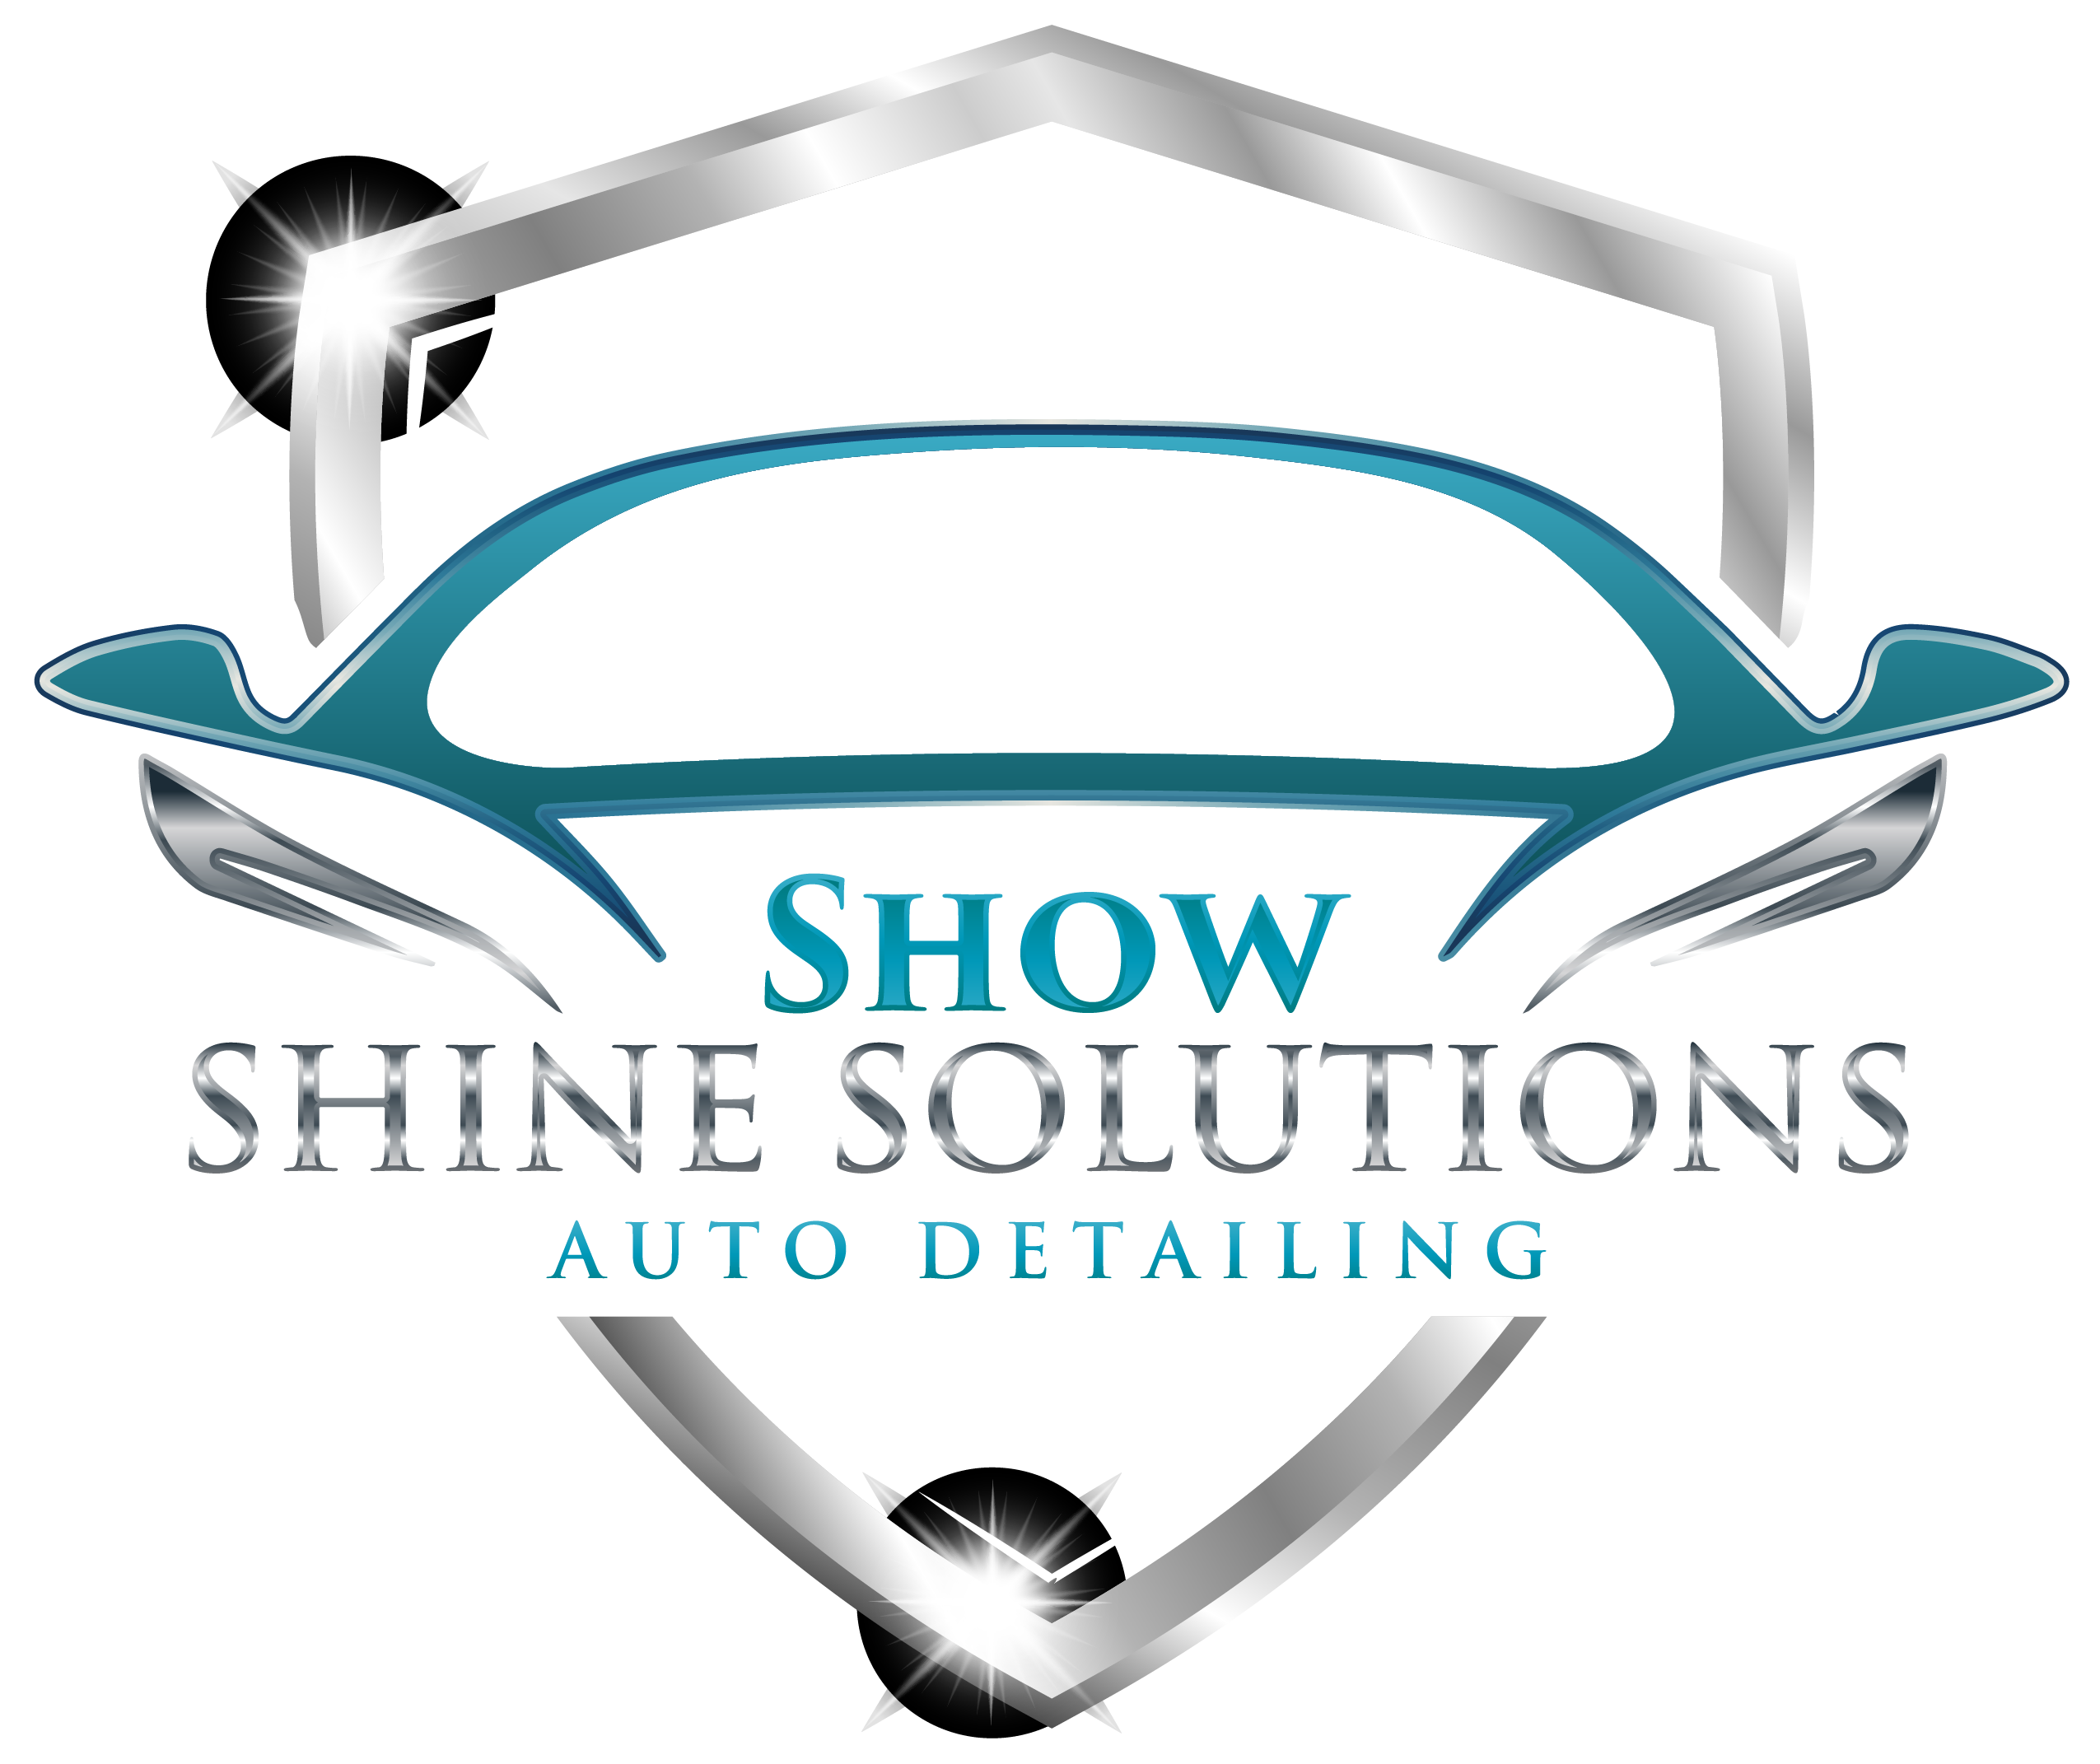 Show Shine Solutions